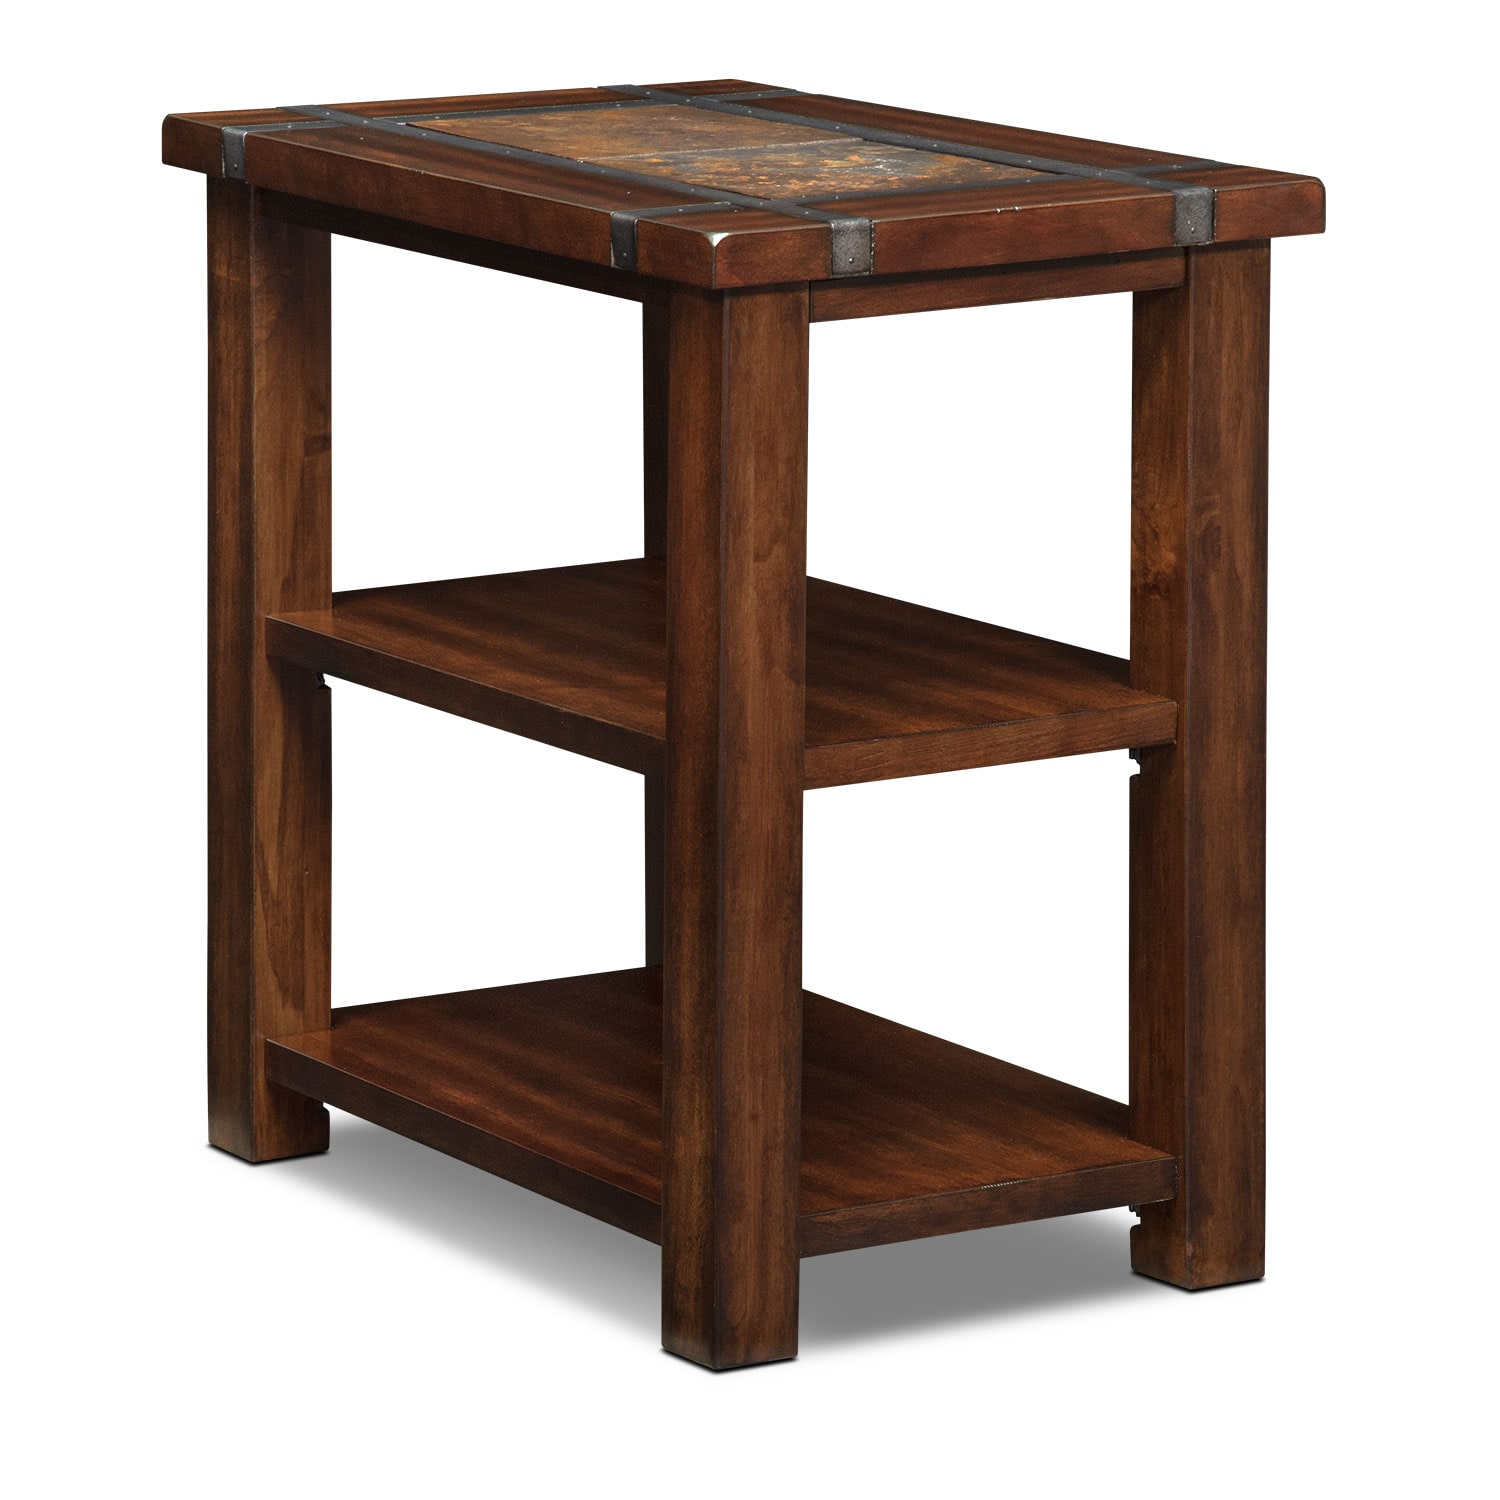 Slate Ridge Chairside Table Cherry American Signature Furniture